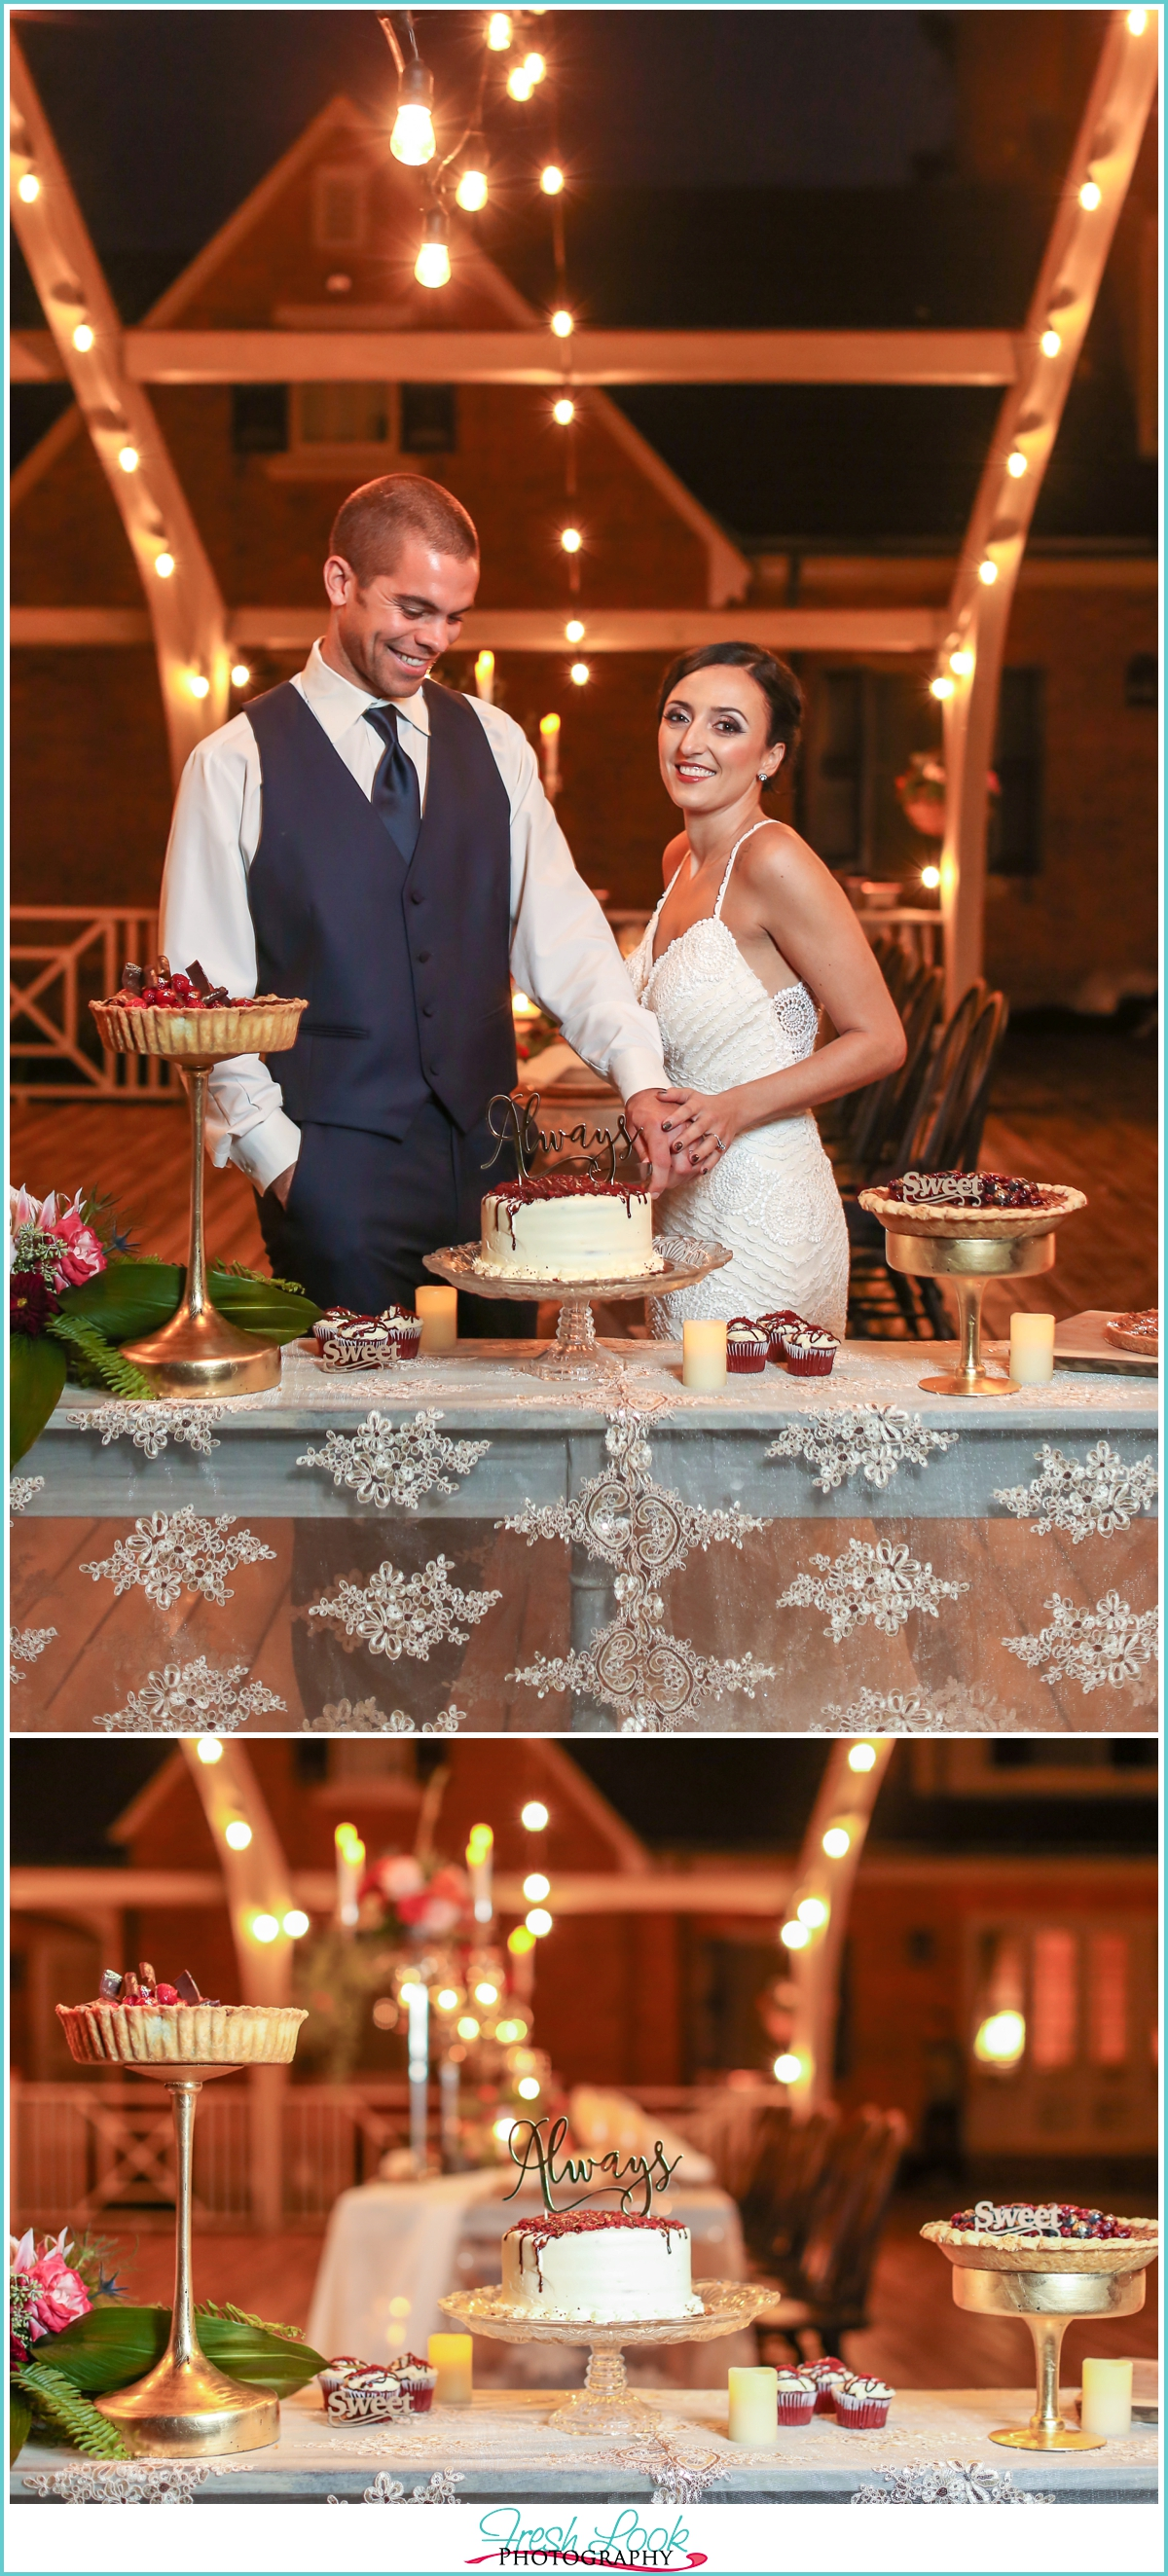 cutting cake at the reception